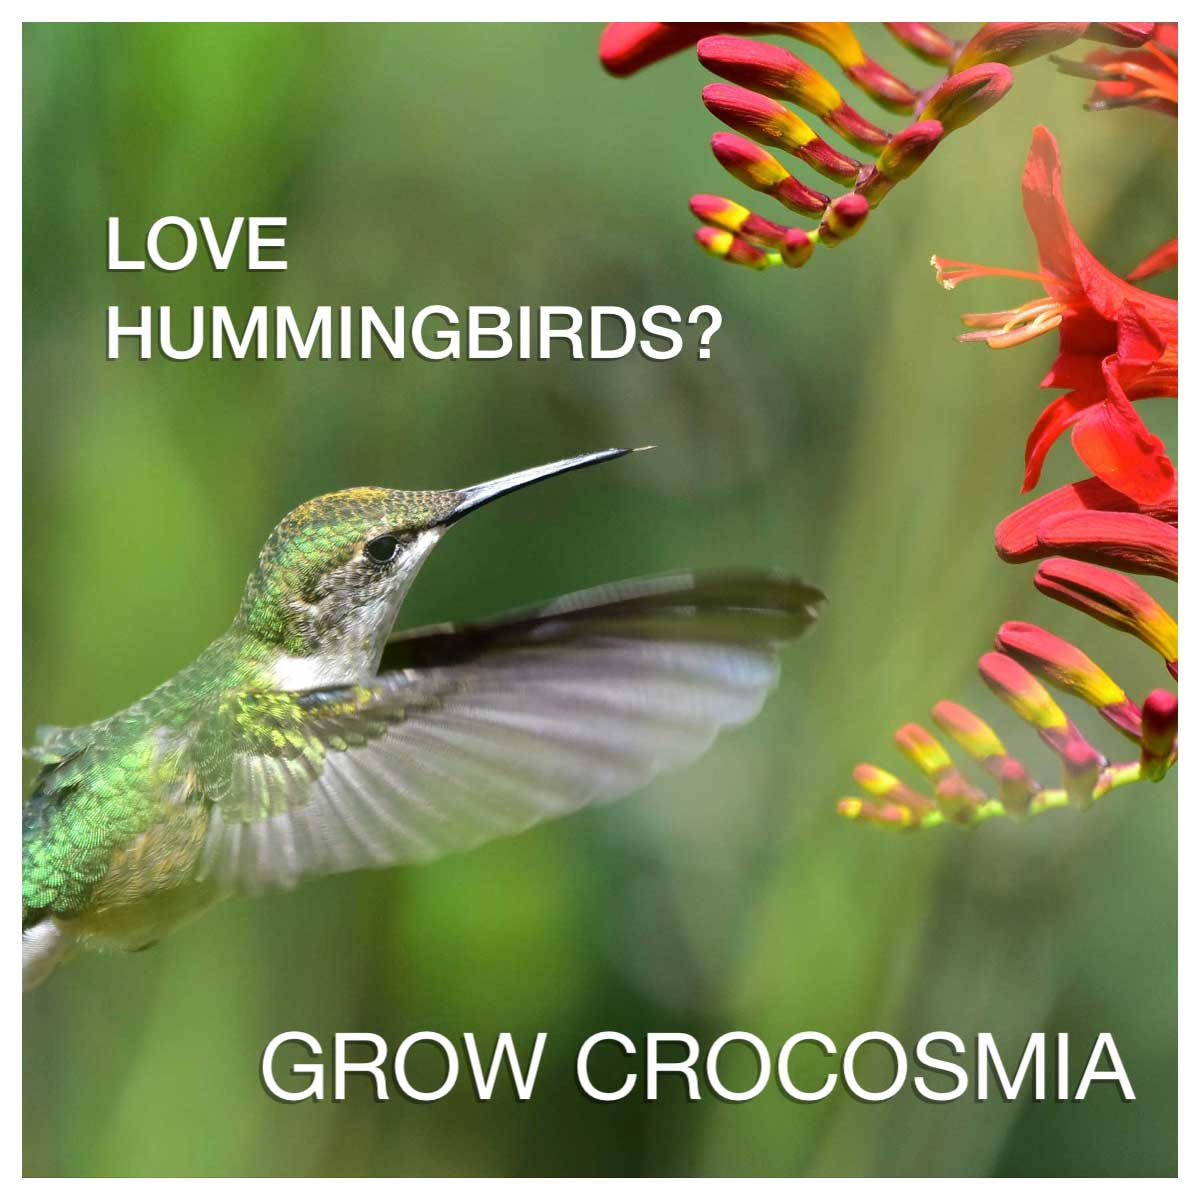 Love Hummingbirds? Grow Some Crocosmia!